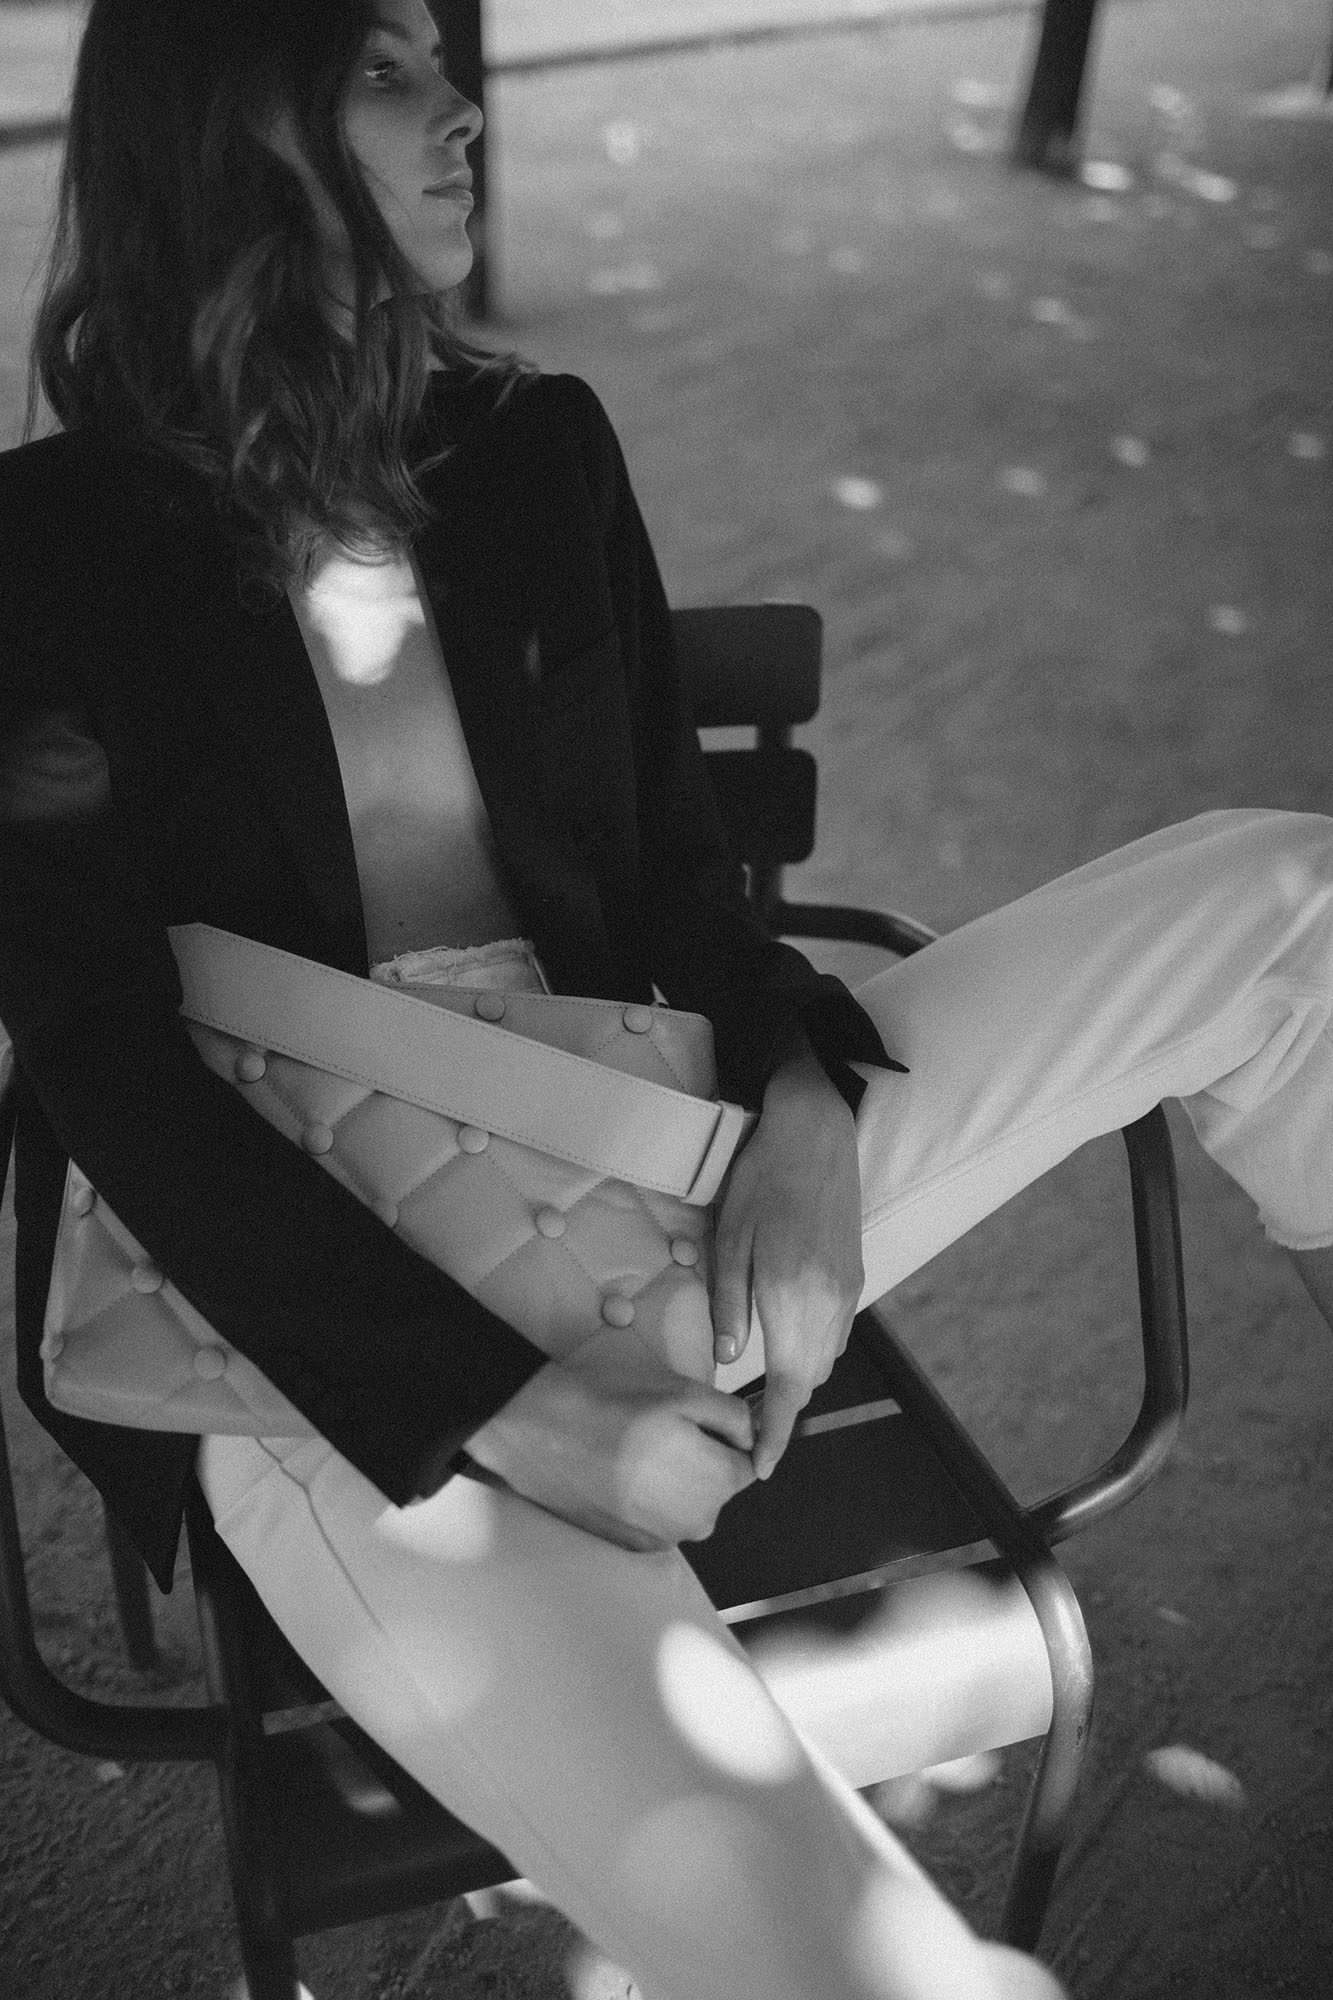 Black and white photo of a model with Laimushka quilted leather handbag sitting on a chair in Palais Royal in Paris